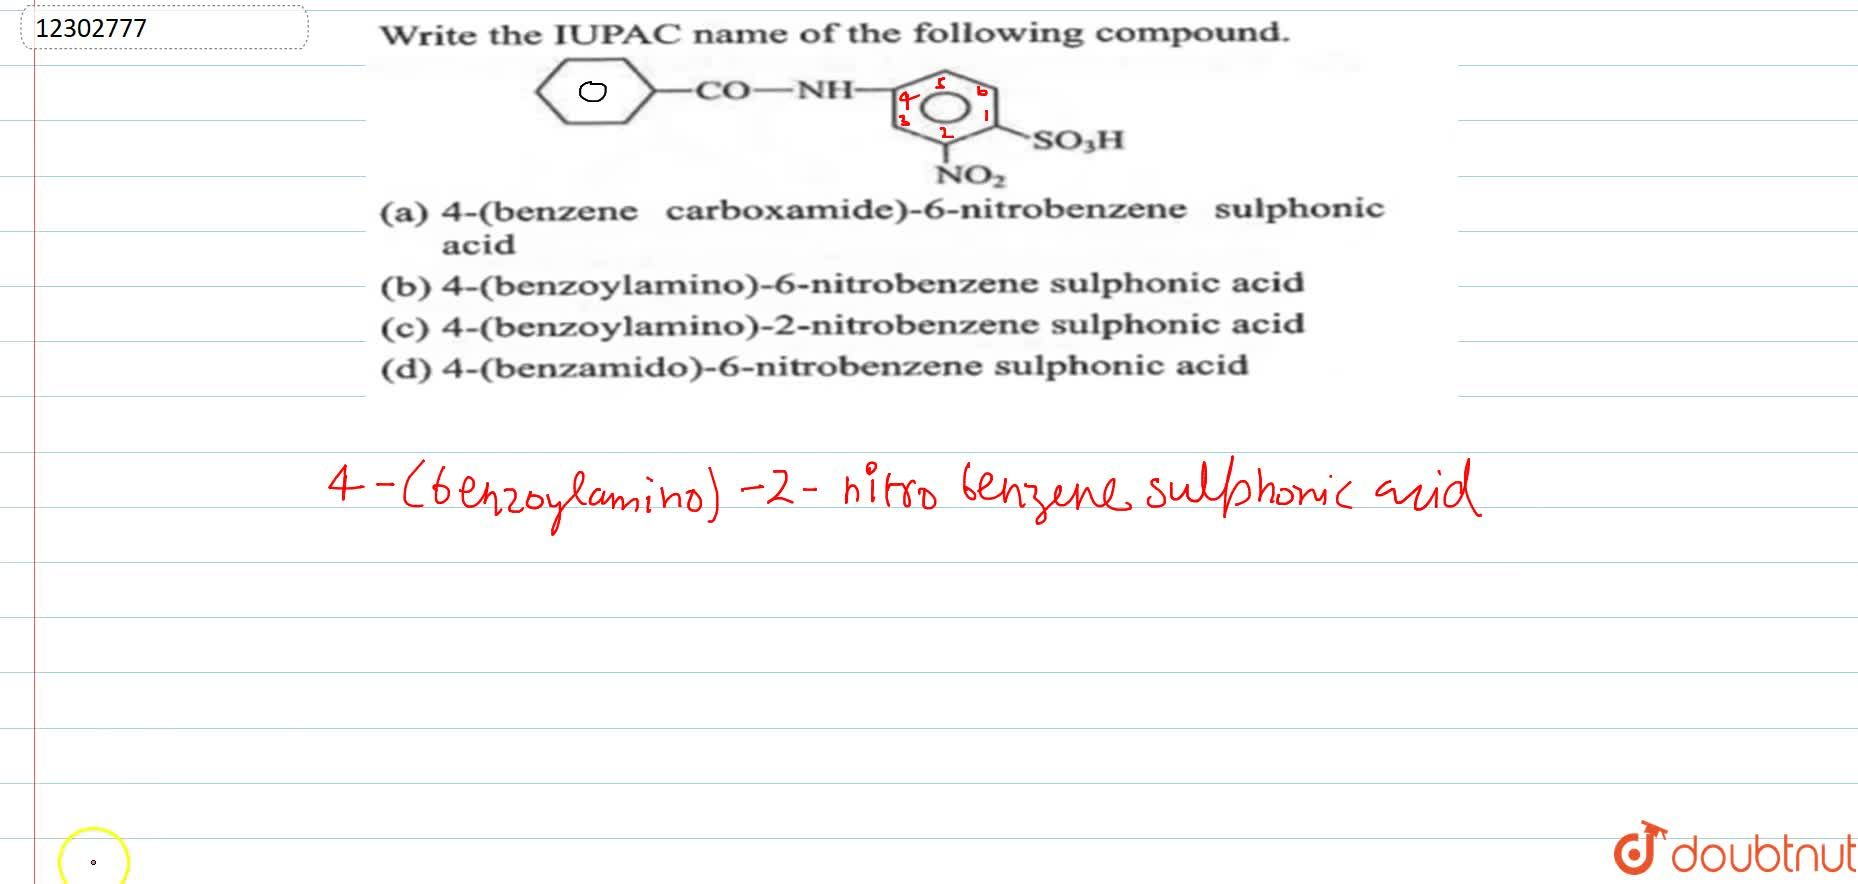 Solution for Write the IUPAC name of the following compound.